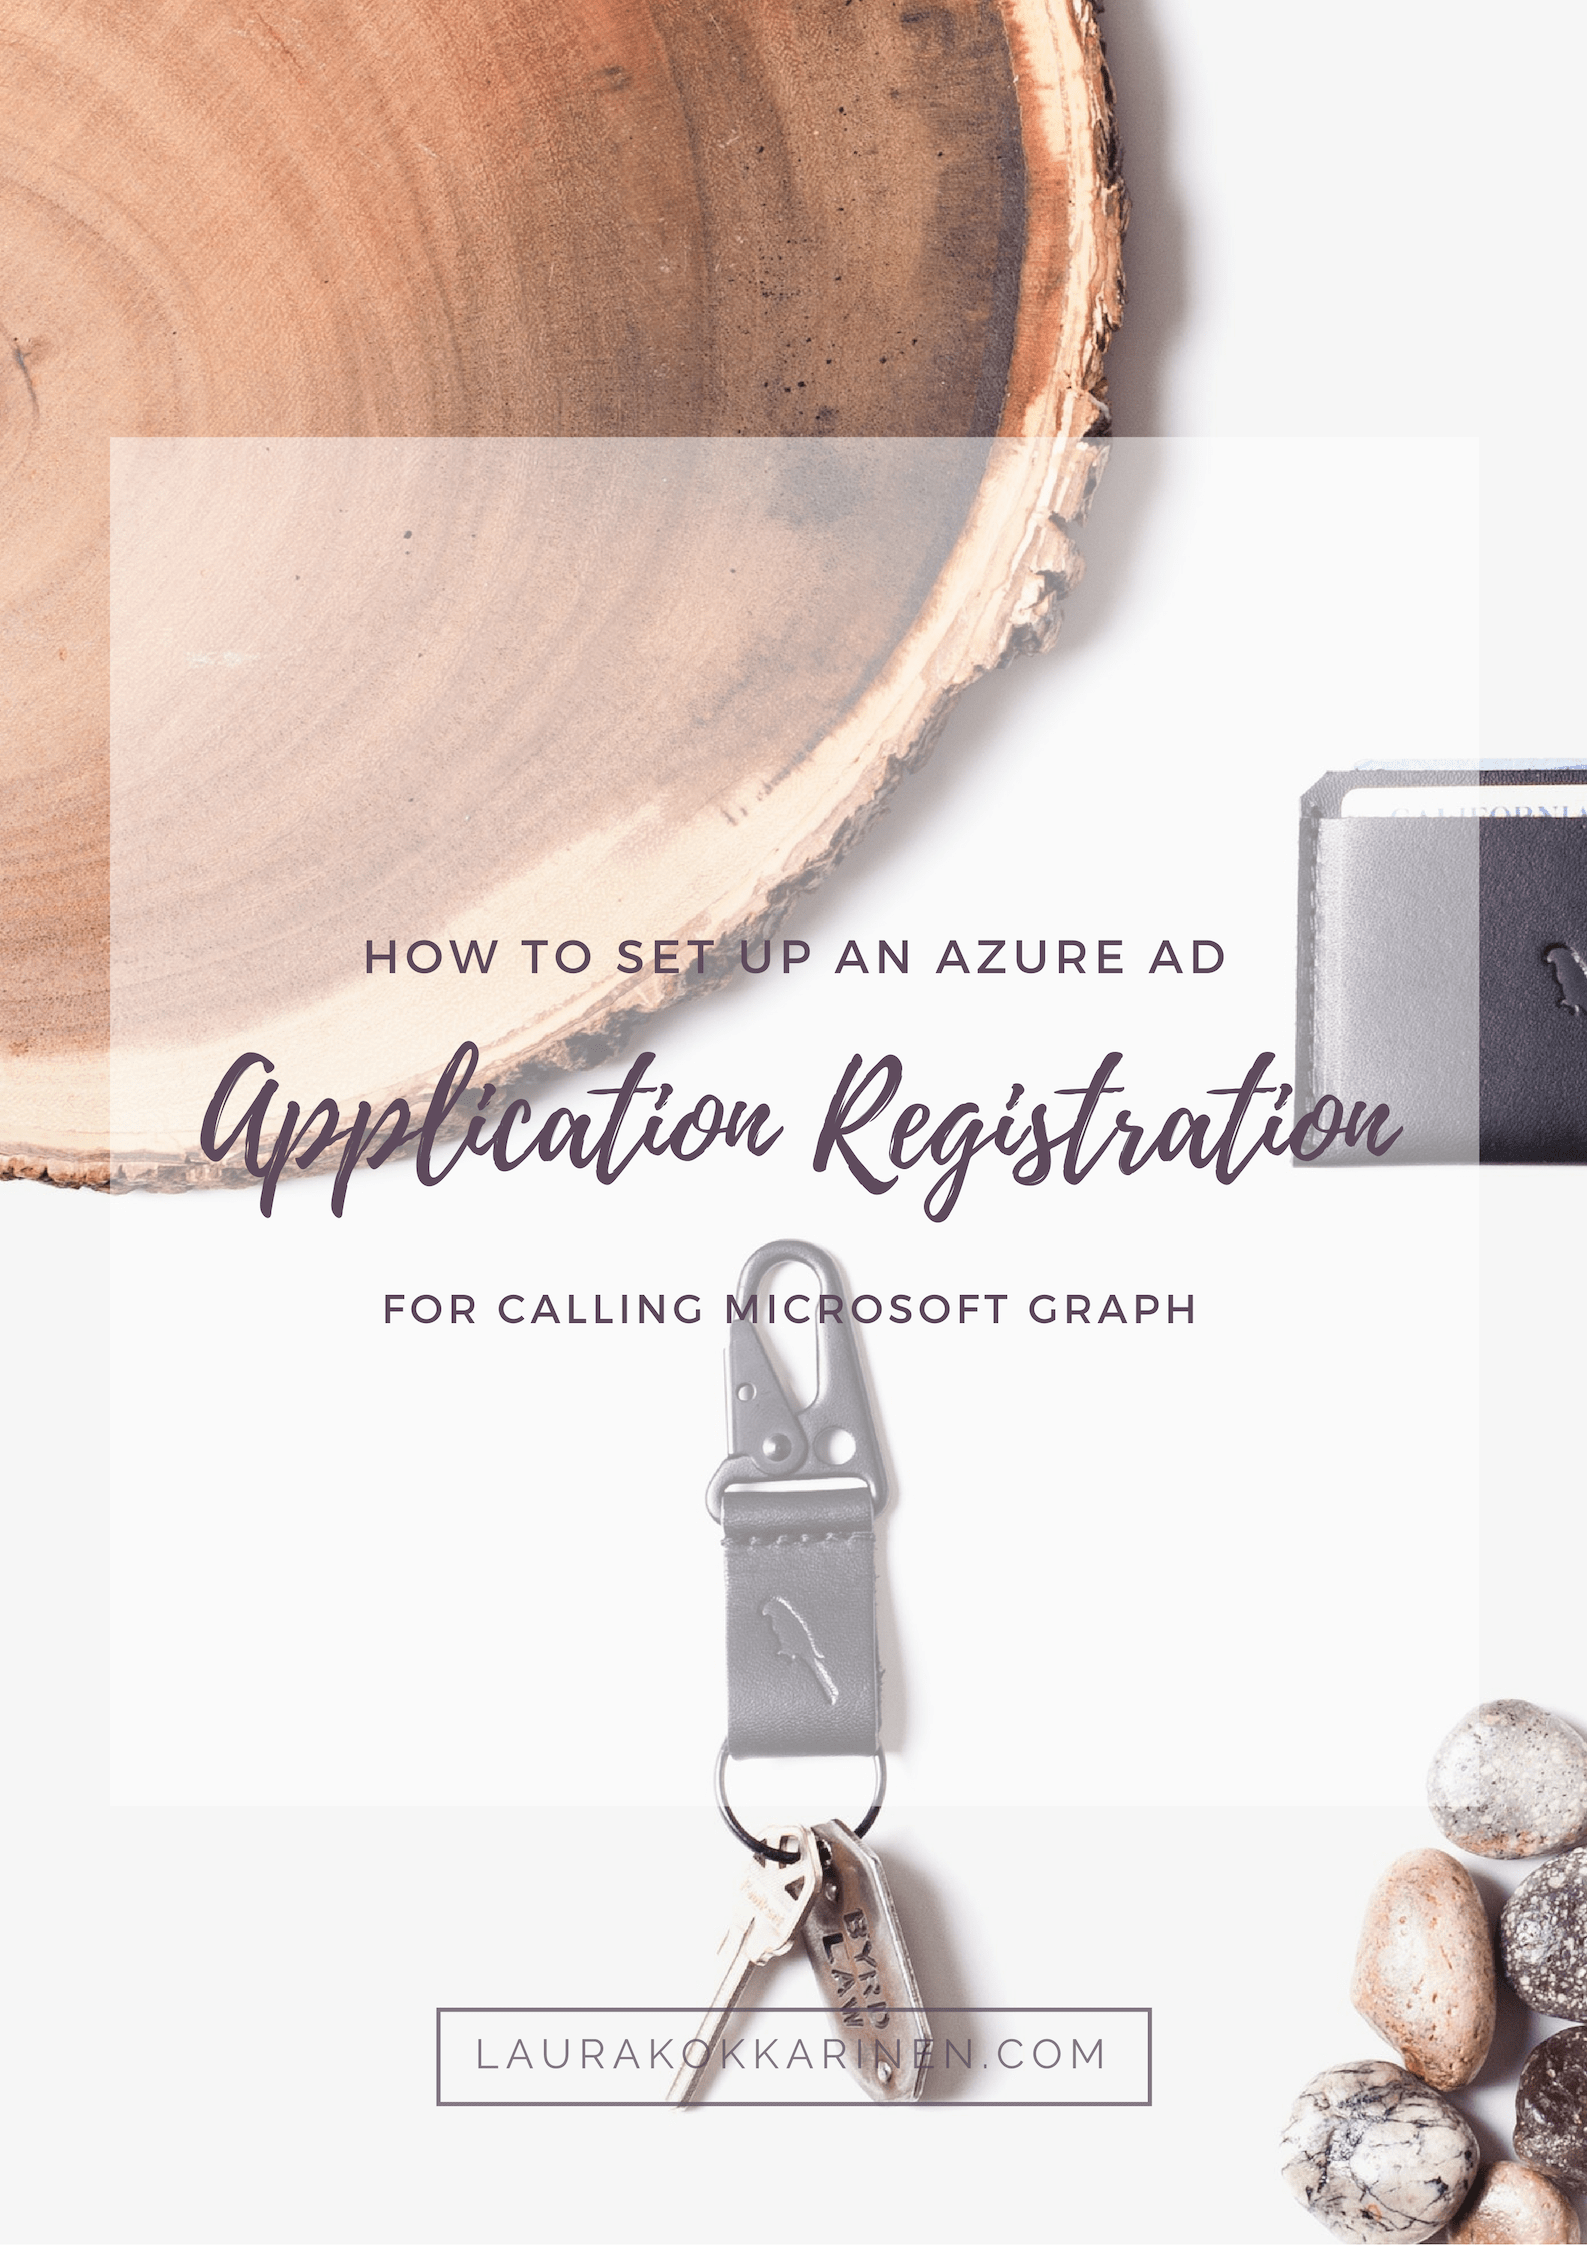 How to set up an Azure AD application registration for